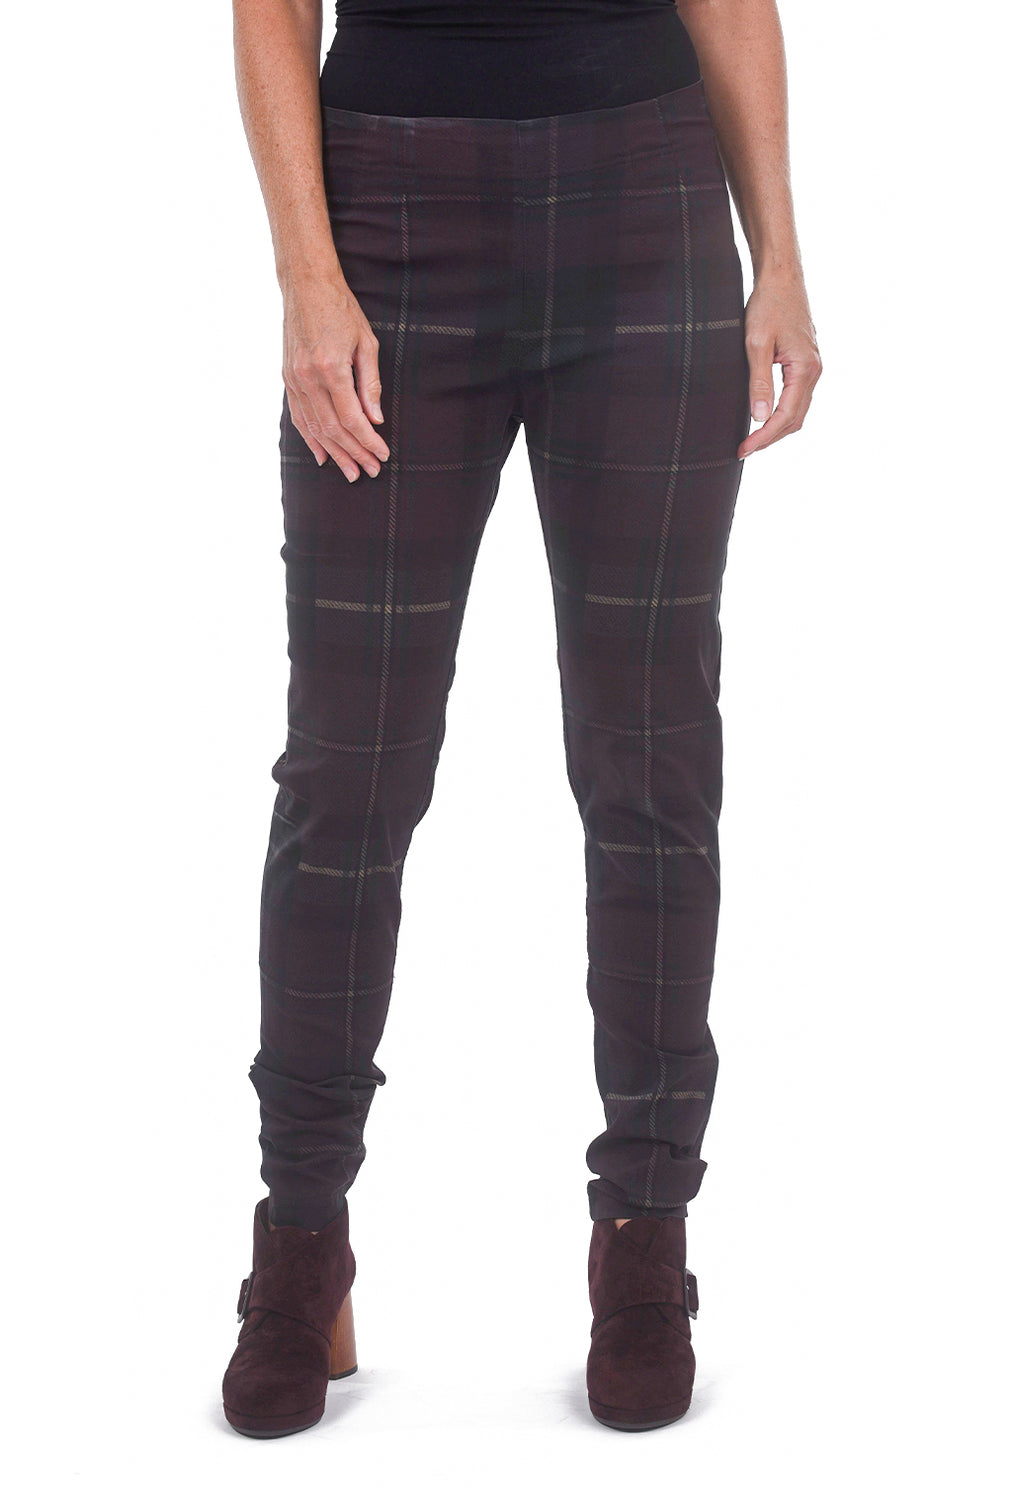 Rundholz Black Label Sig Stretch Twill Icon Skinny, Merlot Plaid